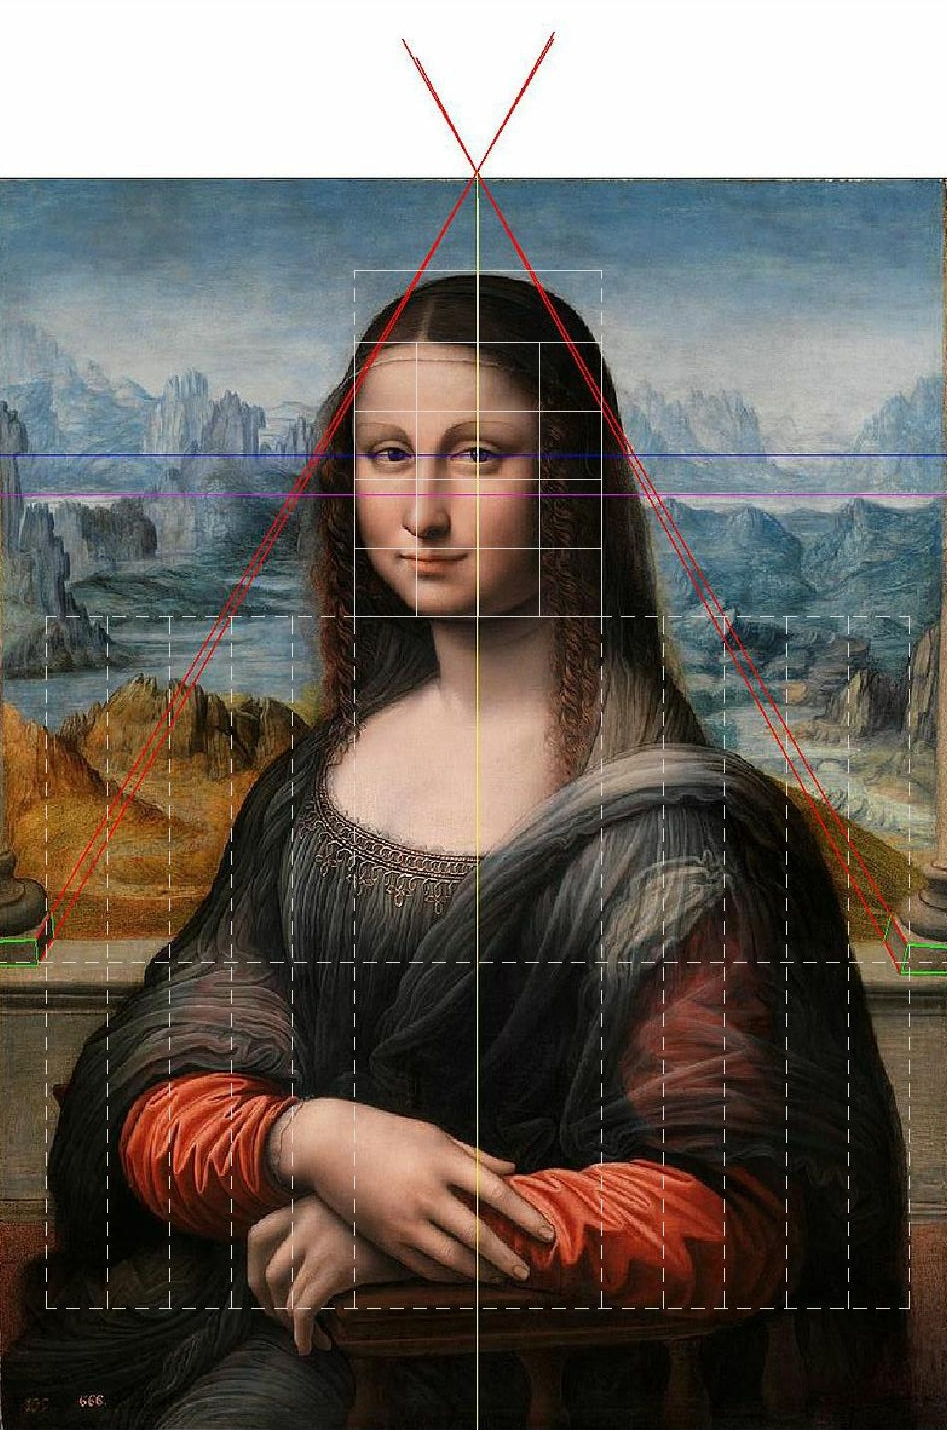 descriptive essay on the mona lisa Mona lisa essays: over 180,000 mona lisa essays, mona lisa term papers, mona lisa research paper, book reports 184 990 essays, term and research papers available for unlimited access.